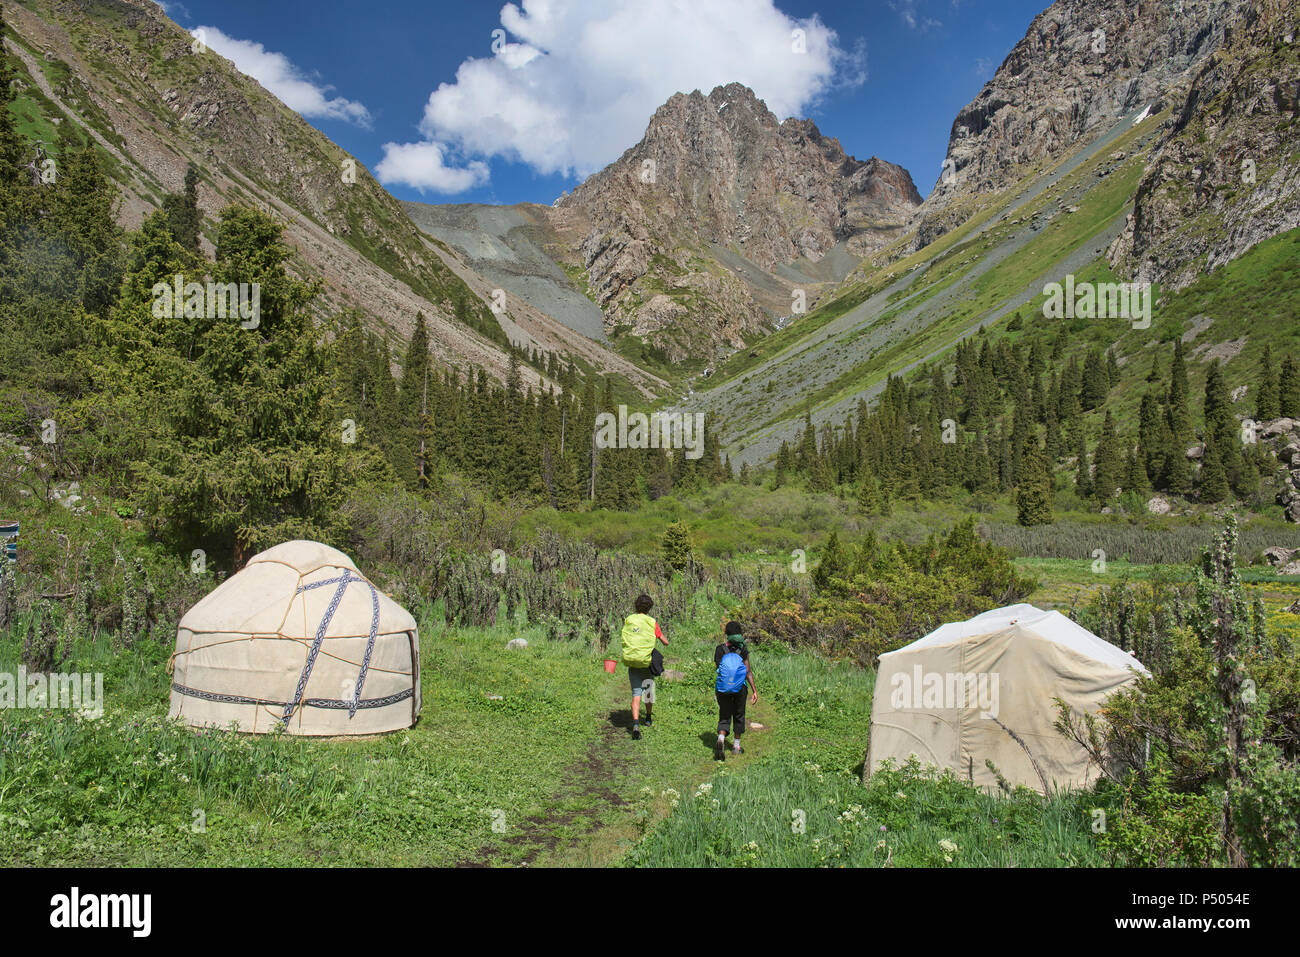 Yurt camp in the Tian Shan Mountains, Karakol, Kyrgyzstan - Stock Image